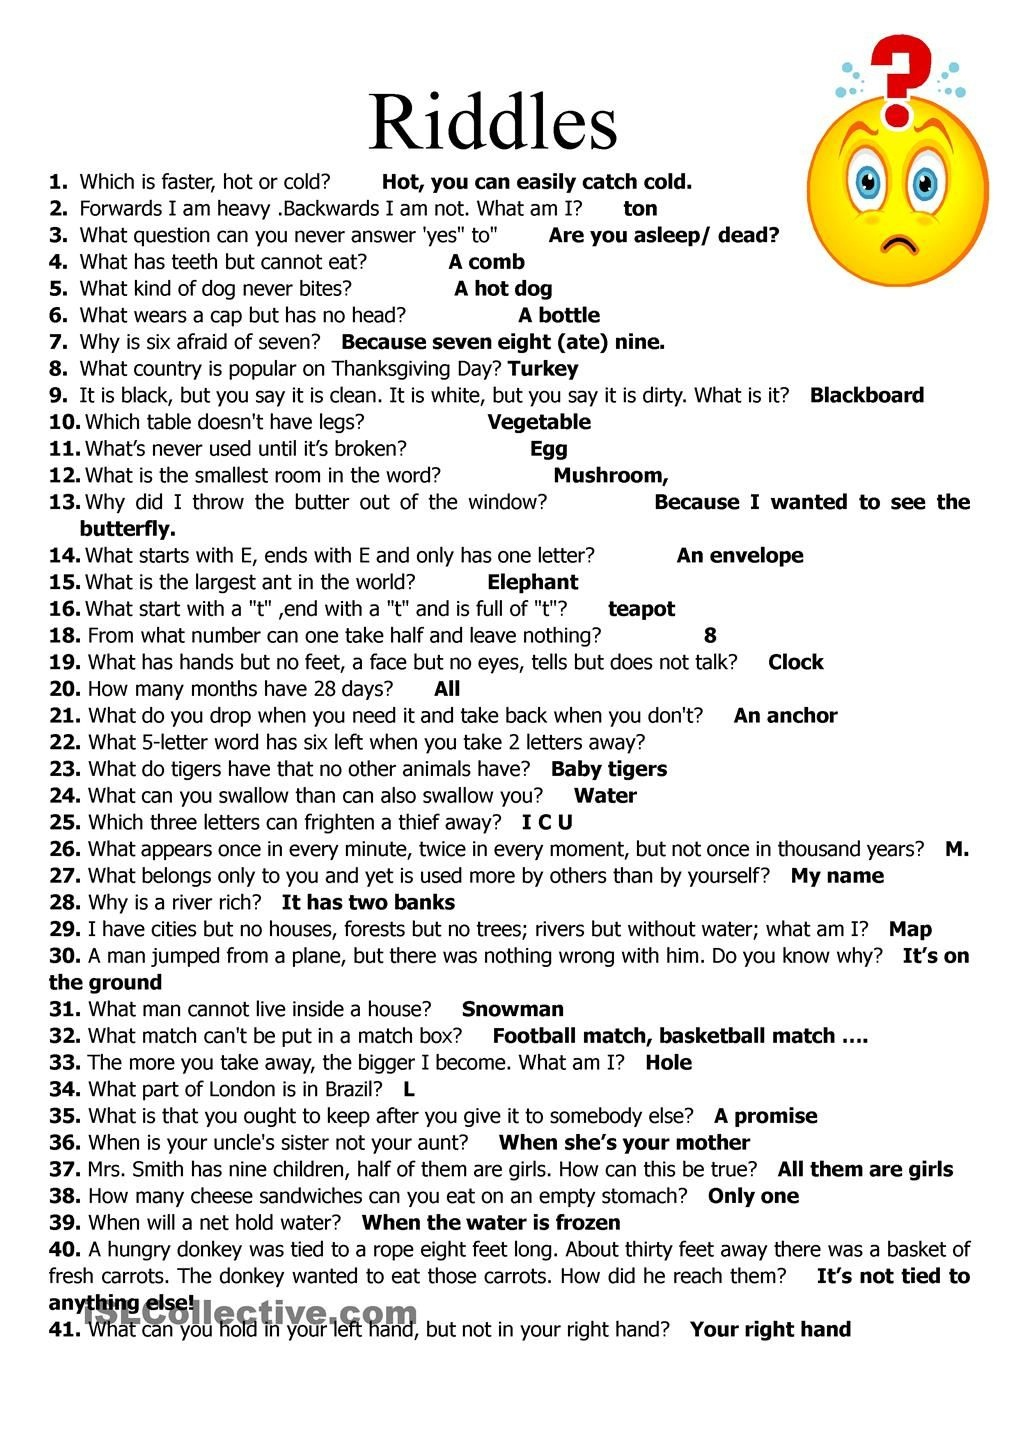 I Couldn't Guess The Answer For #22 And I Didn't Understand #38 - Free Printable Riddles